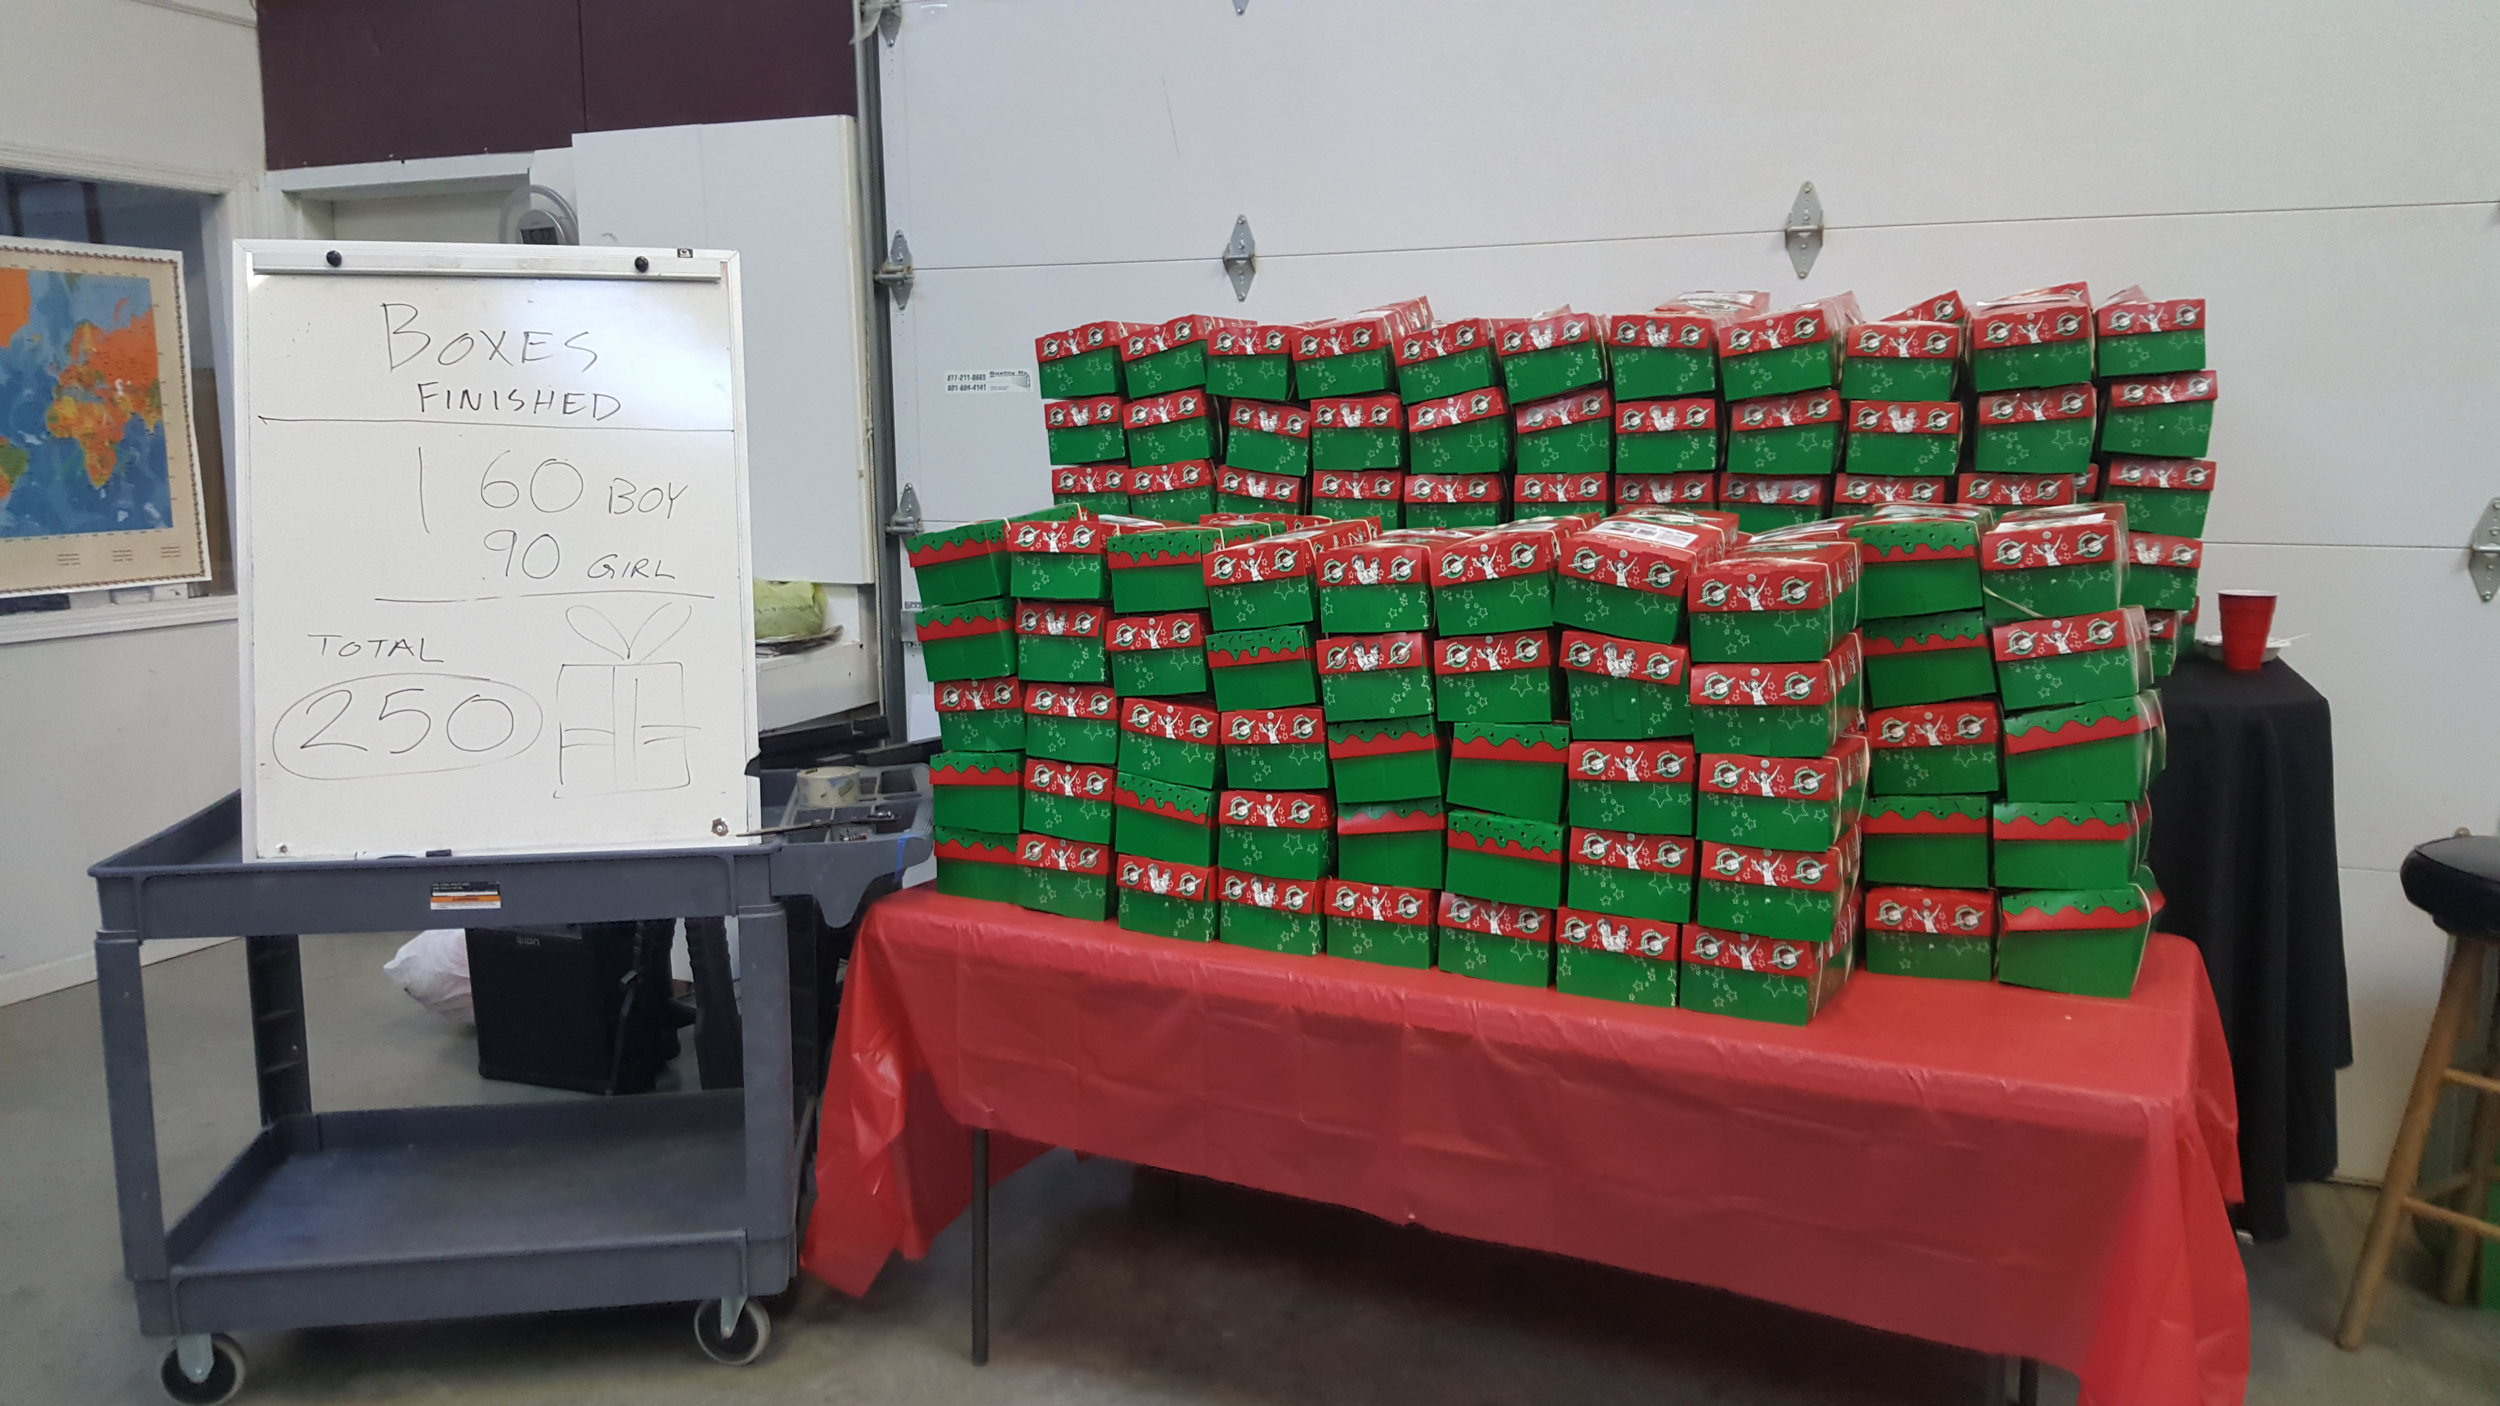 The community came together for the holiday season by packing 250 shoe boxes for Operation Christmas Child.